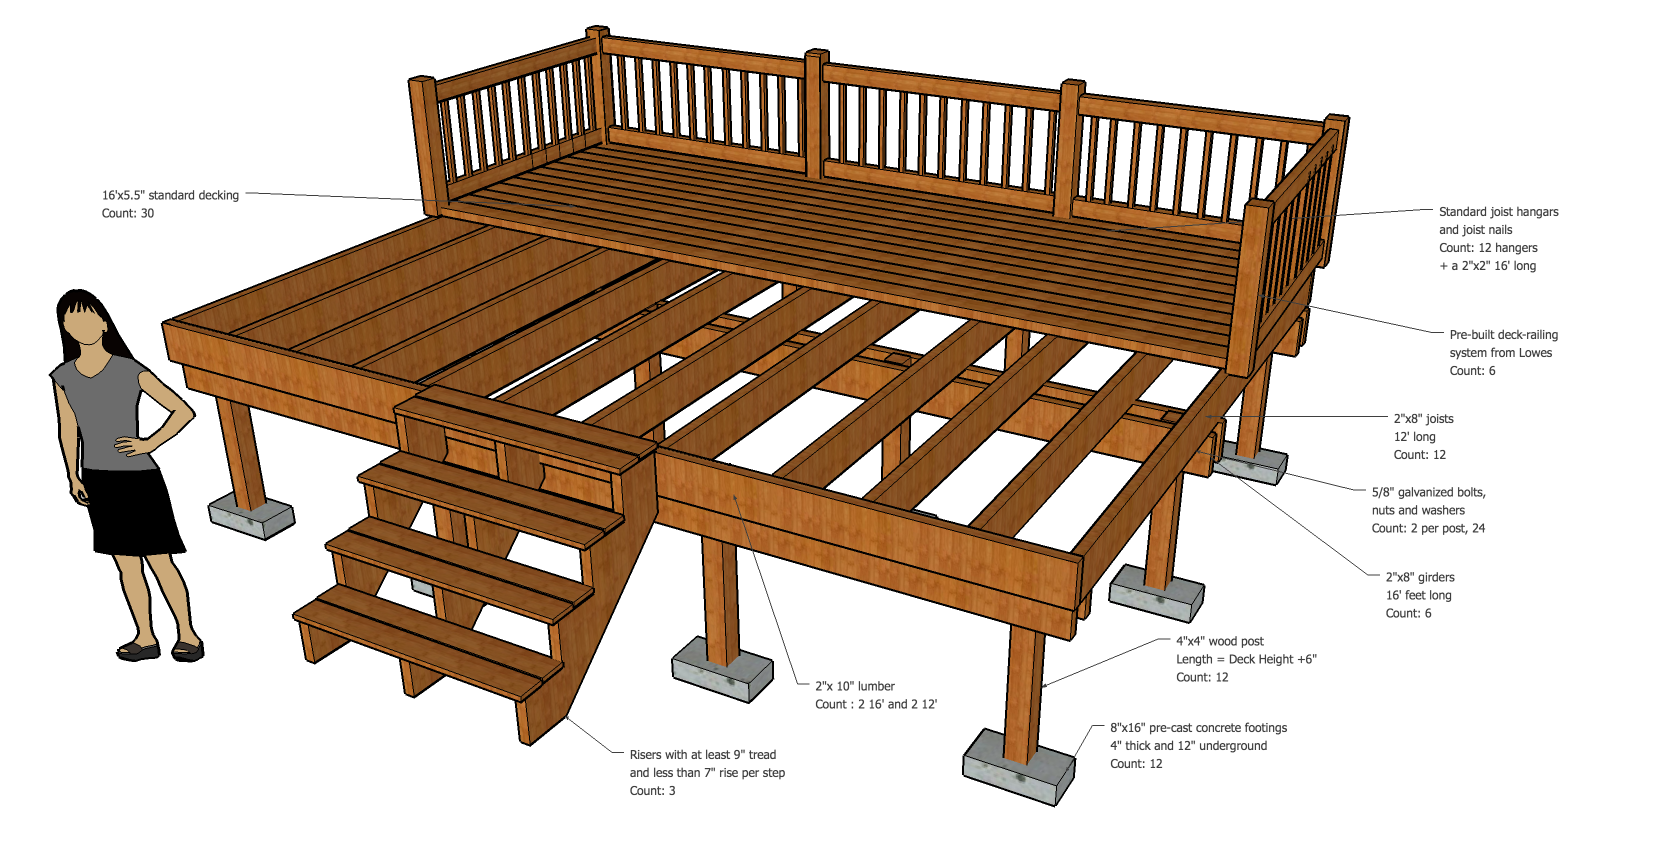 File:Deck design with measurements for Wake County building codes.